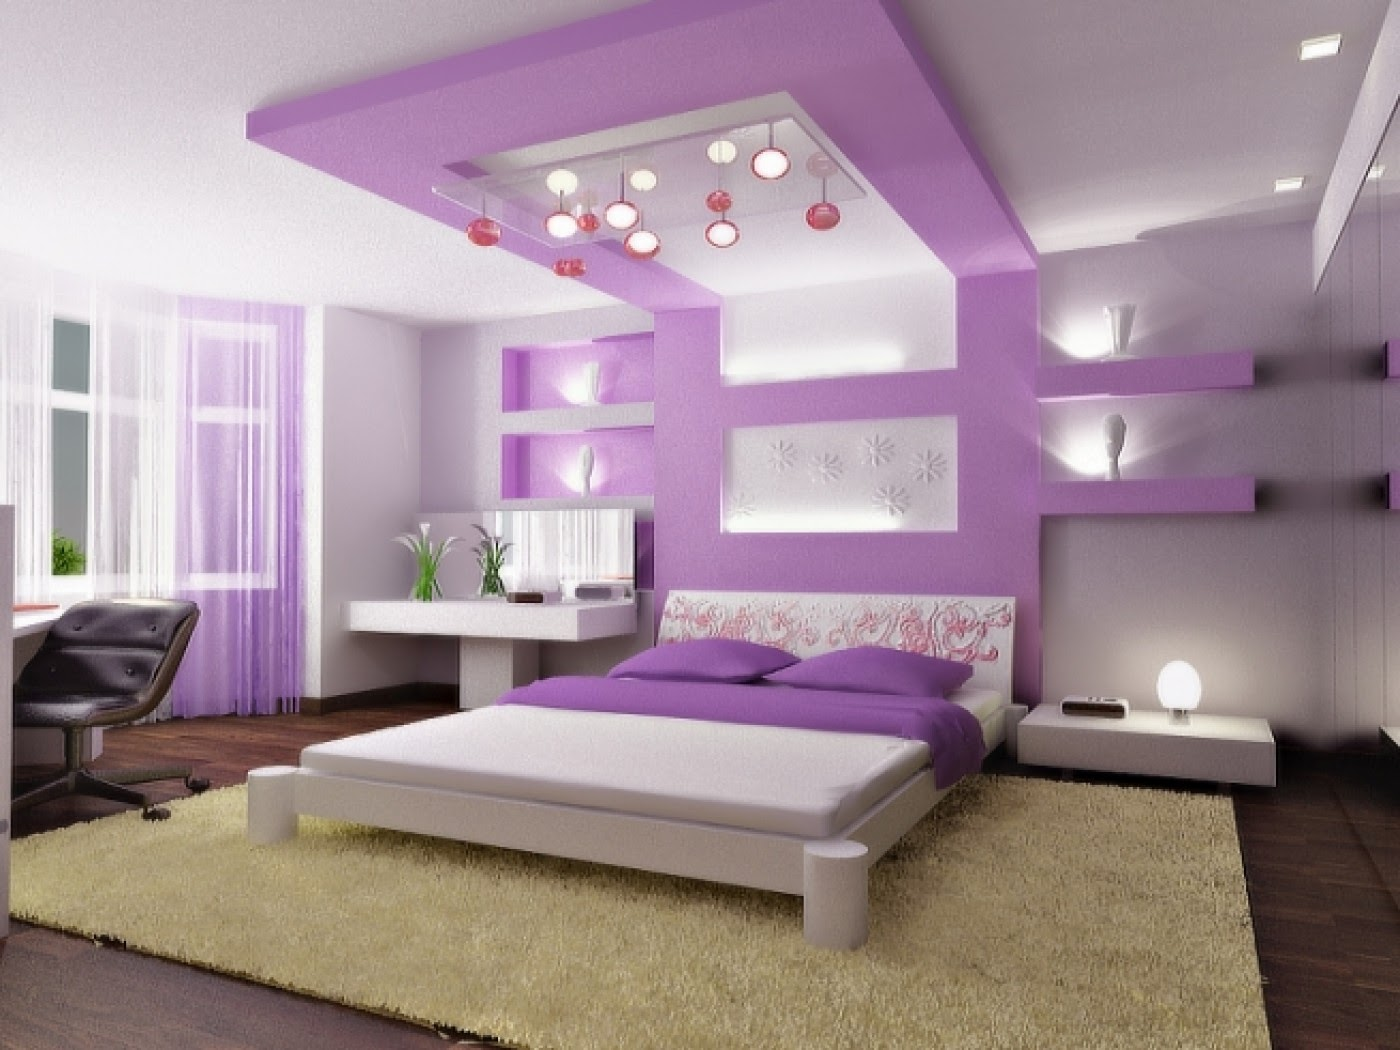 bedroom ceiling. 11 Bedroom ceiling design Eye Catching Ceiling Designs That Will Make You Say Wow